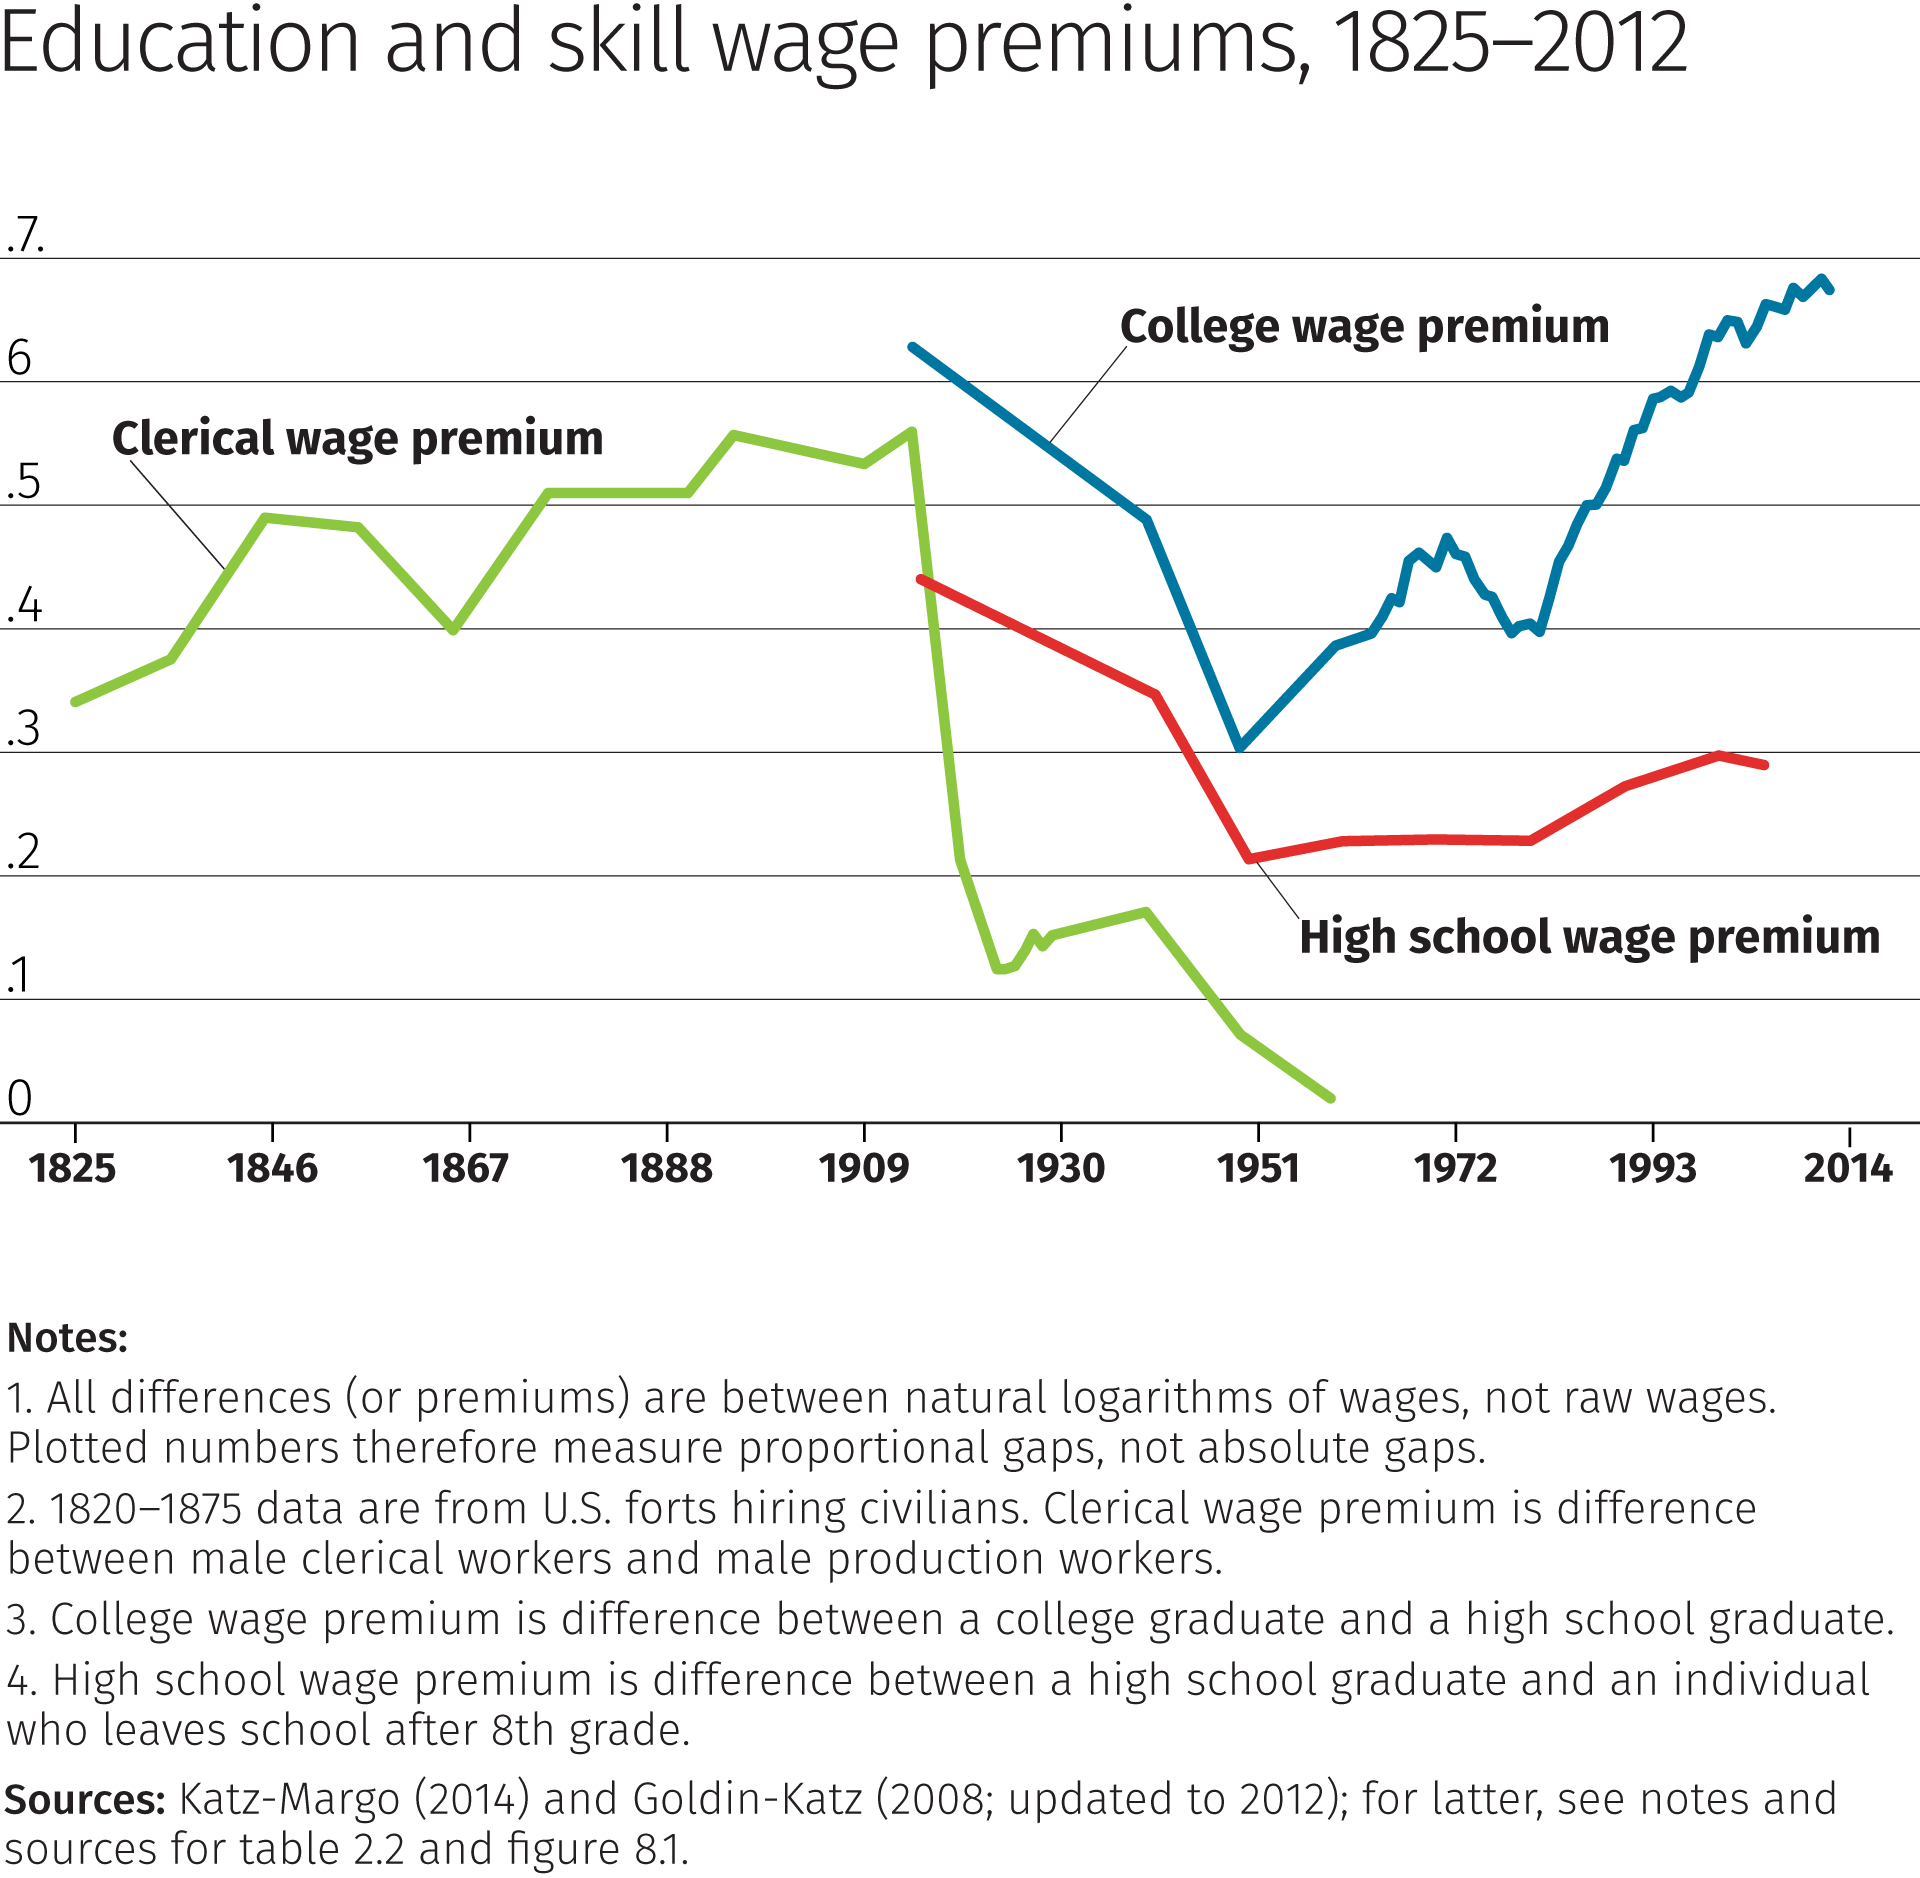 Chart: Education and skill wage premiums, 1825-2012